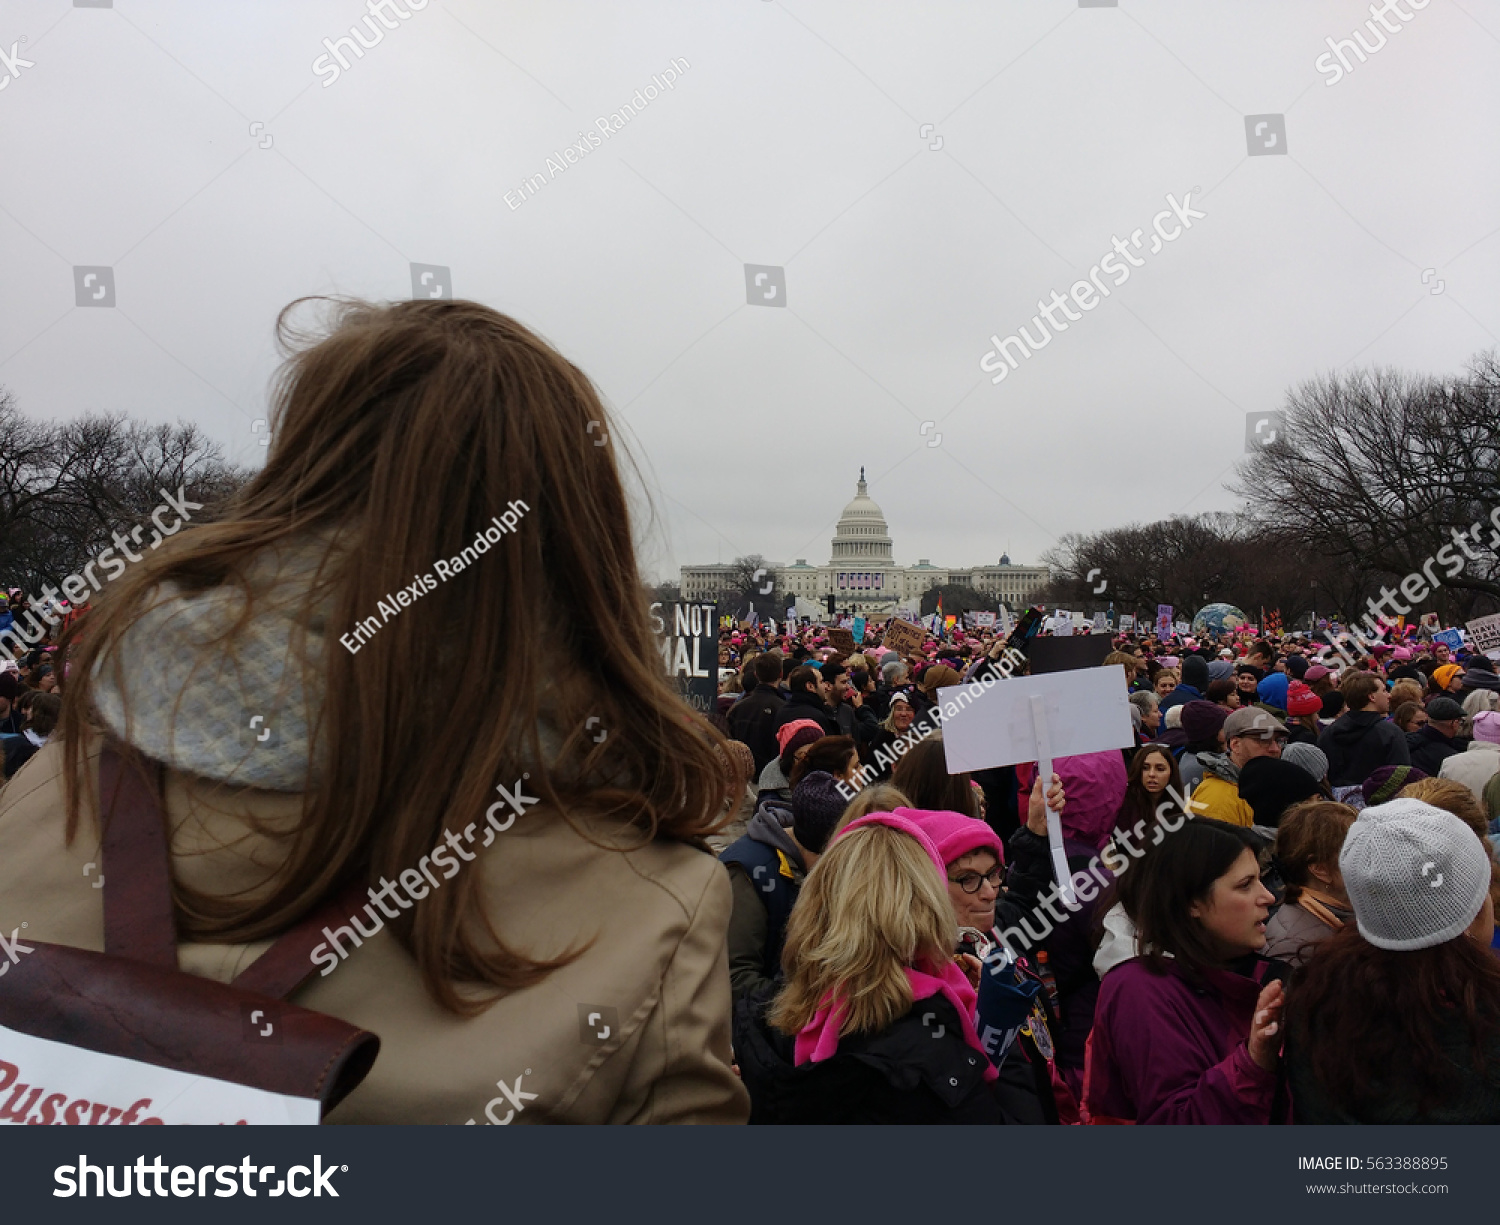 the womens march in washington dc against president donald trump The idea for the women's march on washington took  president-elect donald trump are  woman president this march is about letting trump know.